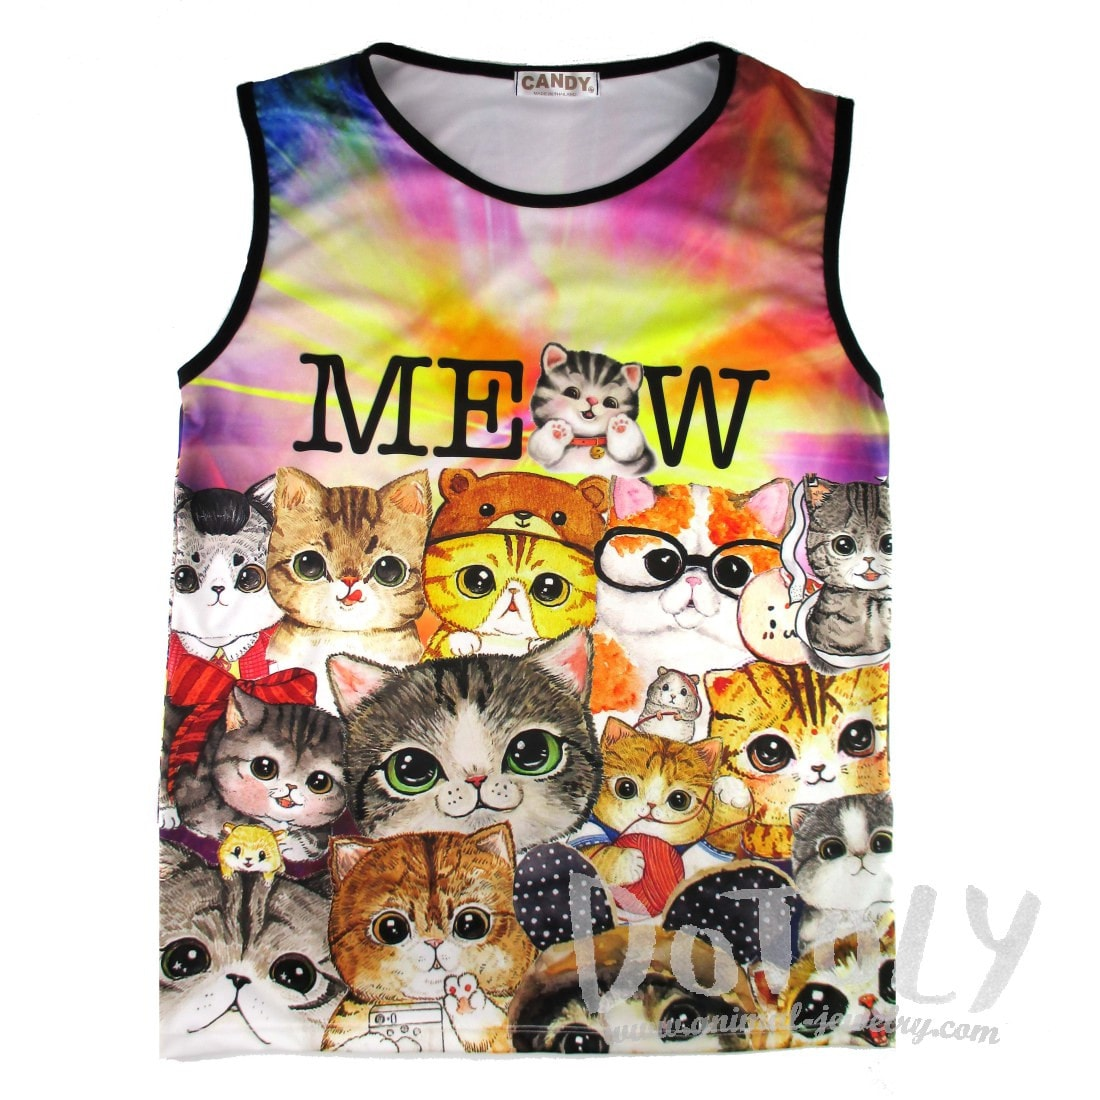 Illustrated Kitty Cat Collage Graphic Print Oversized Unisex Tank Top